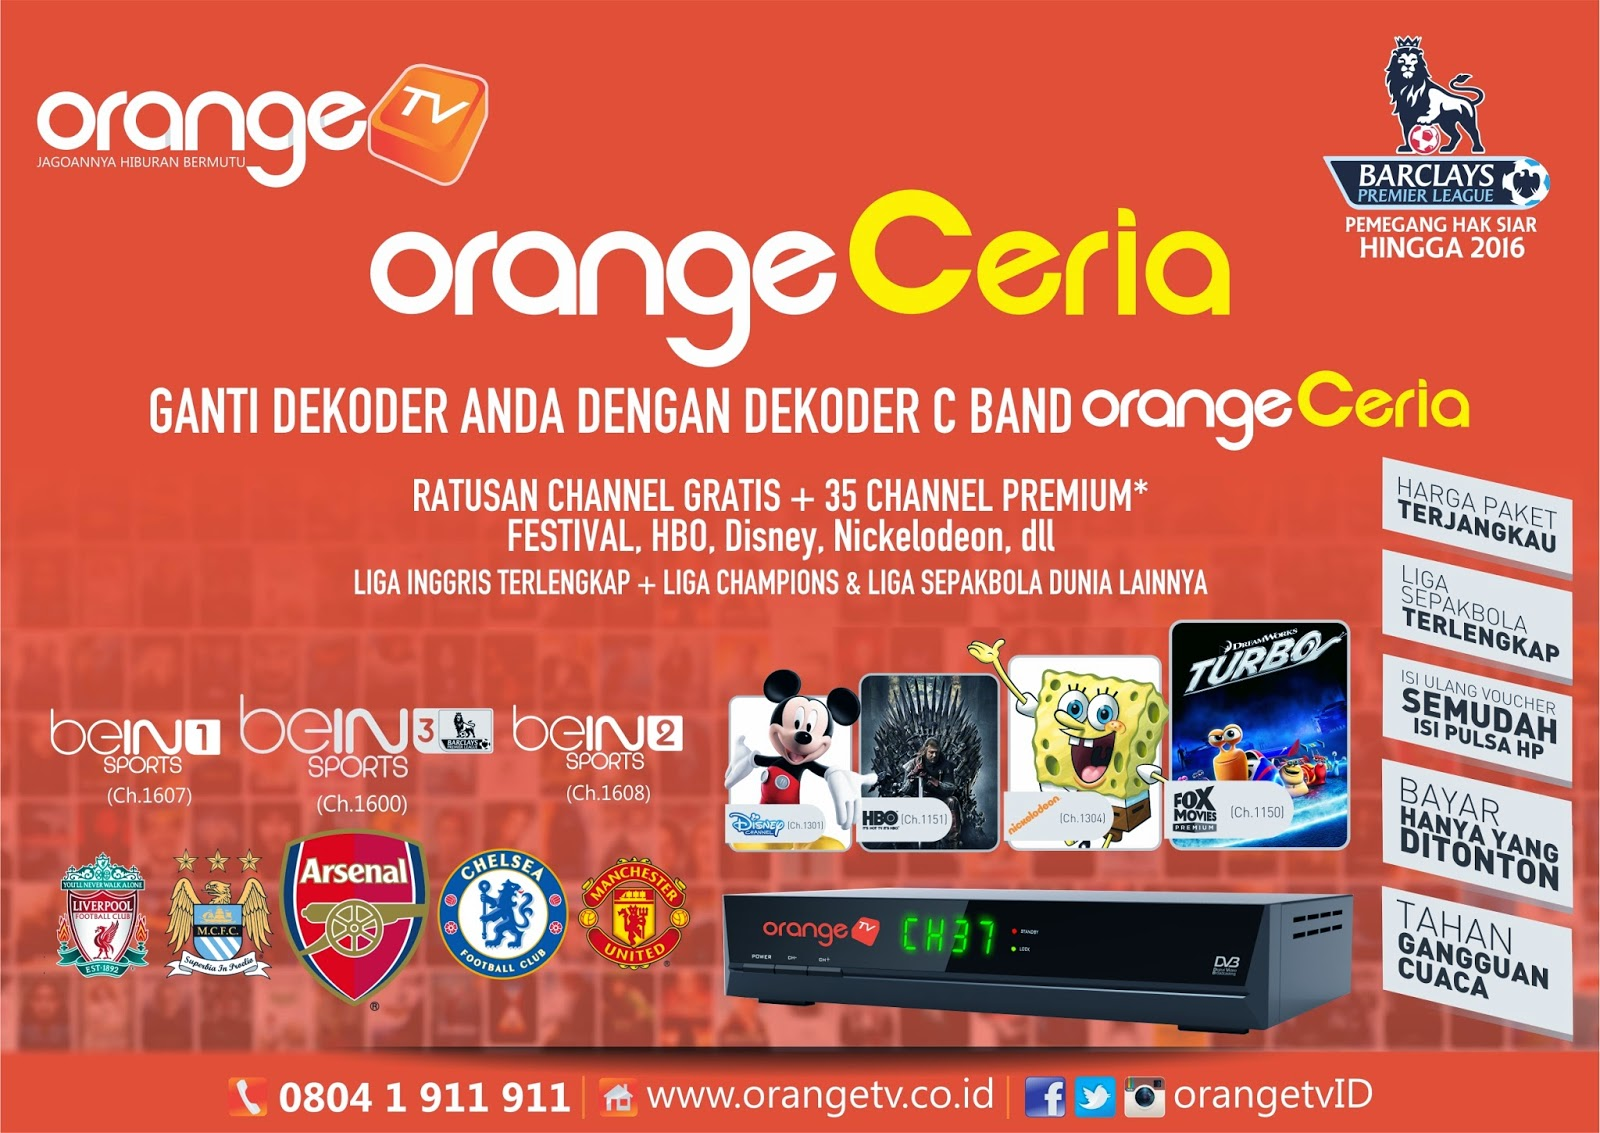 images c-band orangtv